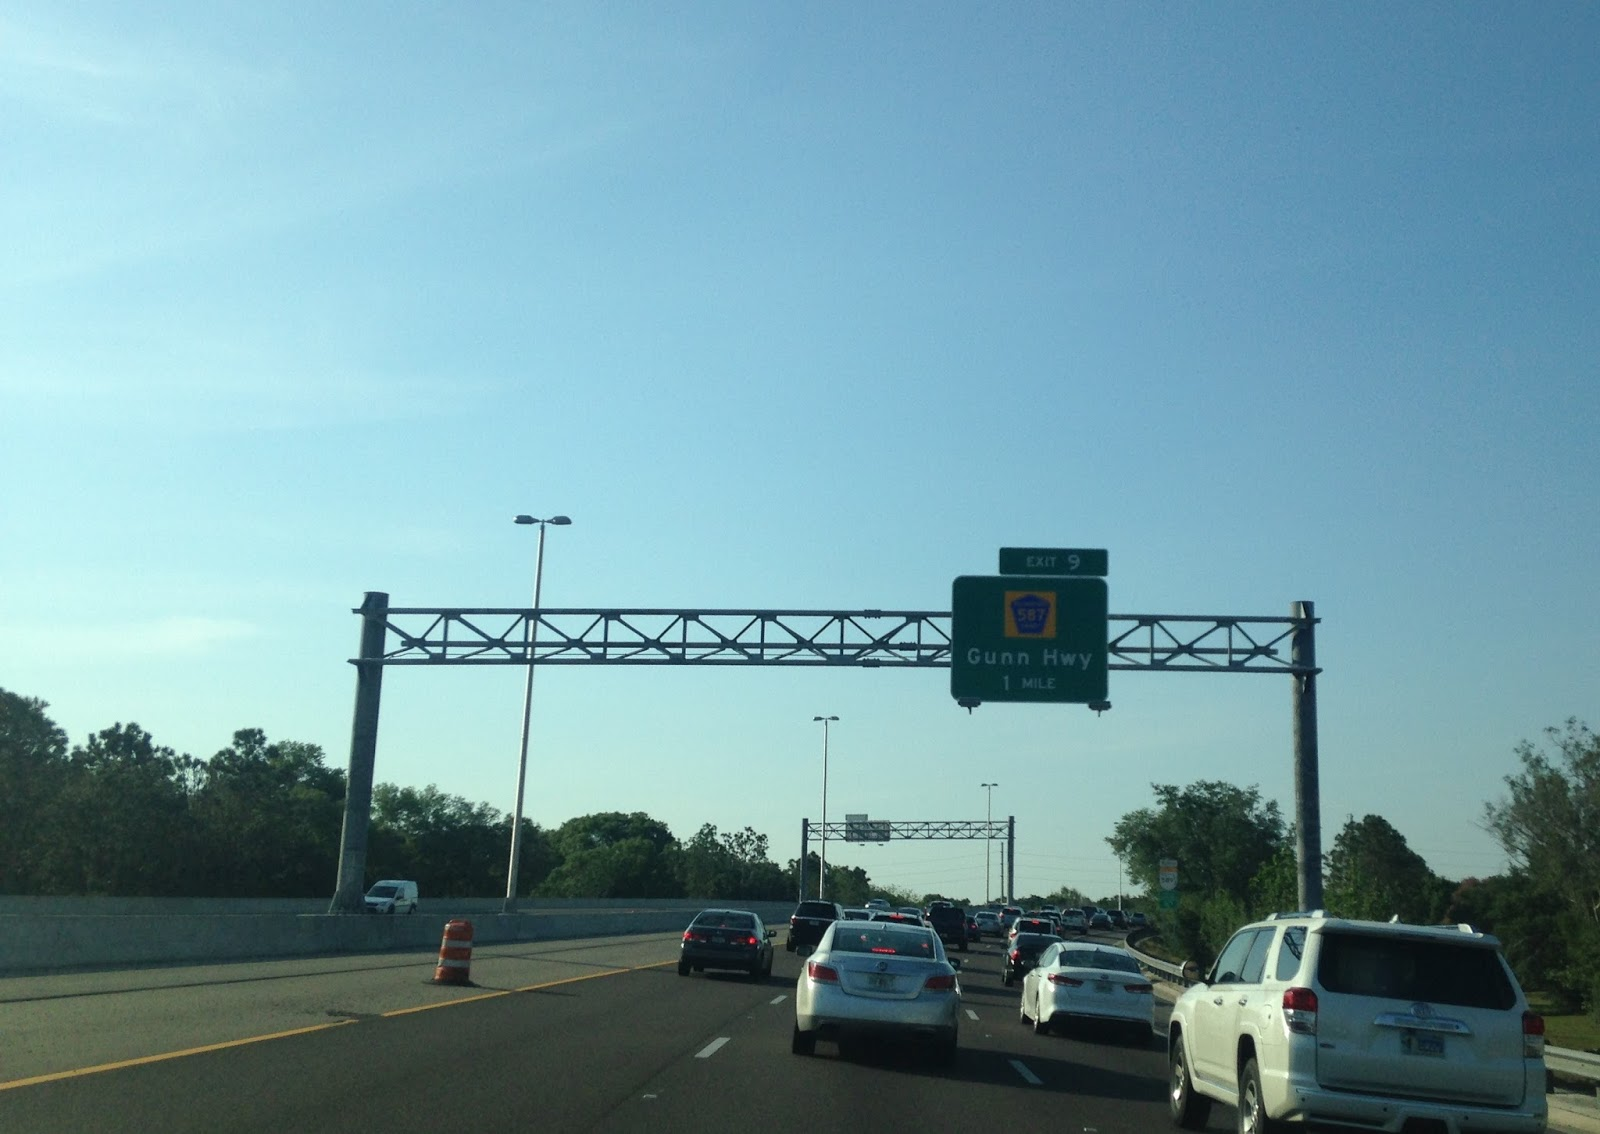 a little call back to how awful the veterans expressway really used to be it felt weird to see electronic tolling in places of a toll plaza